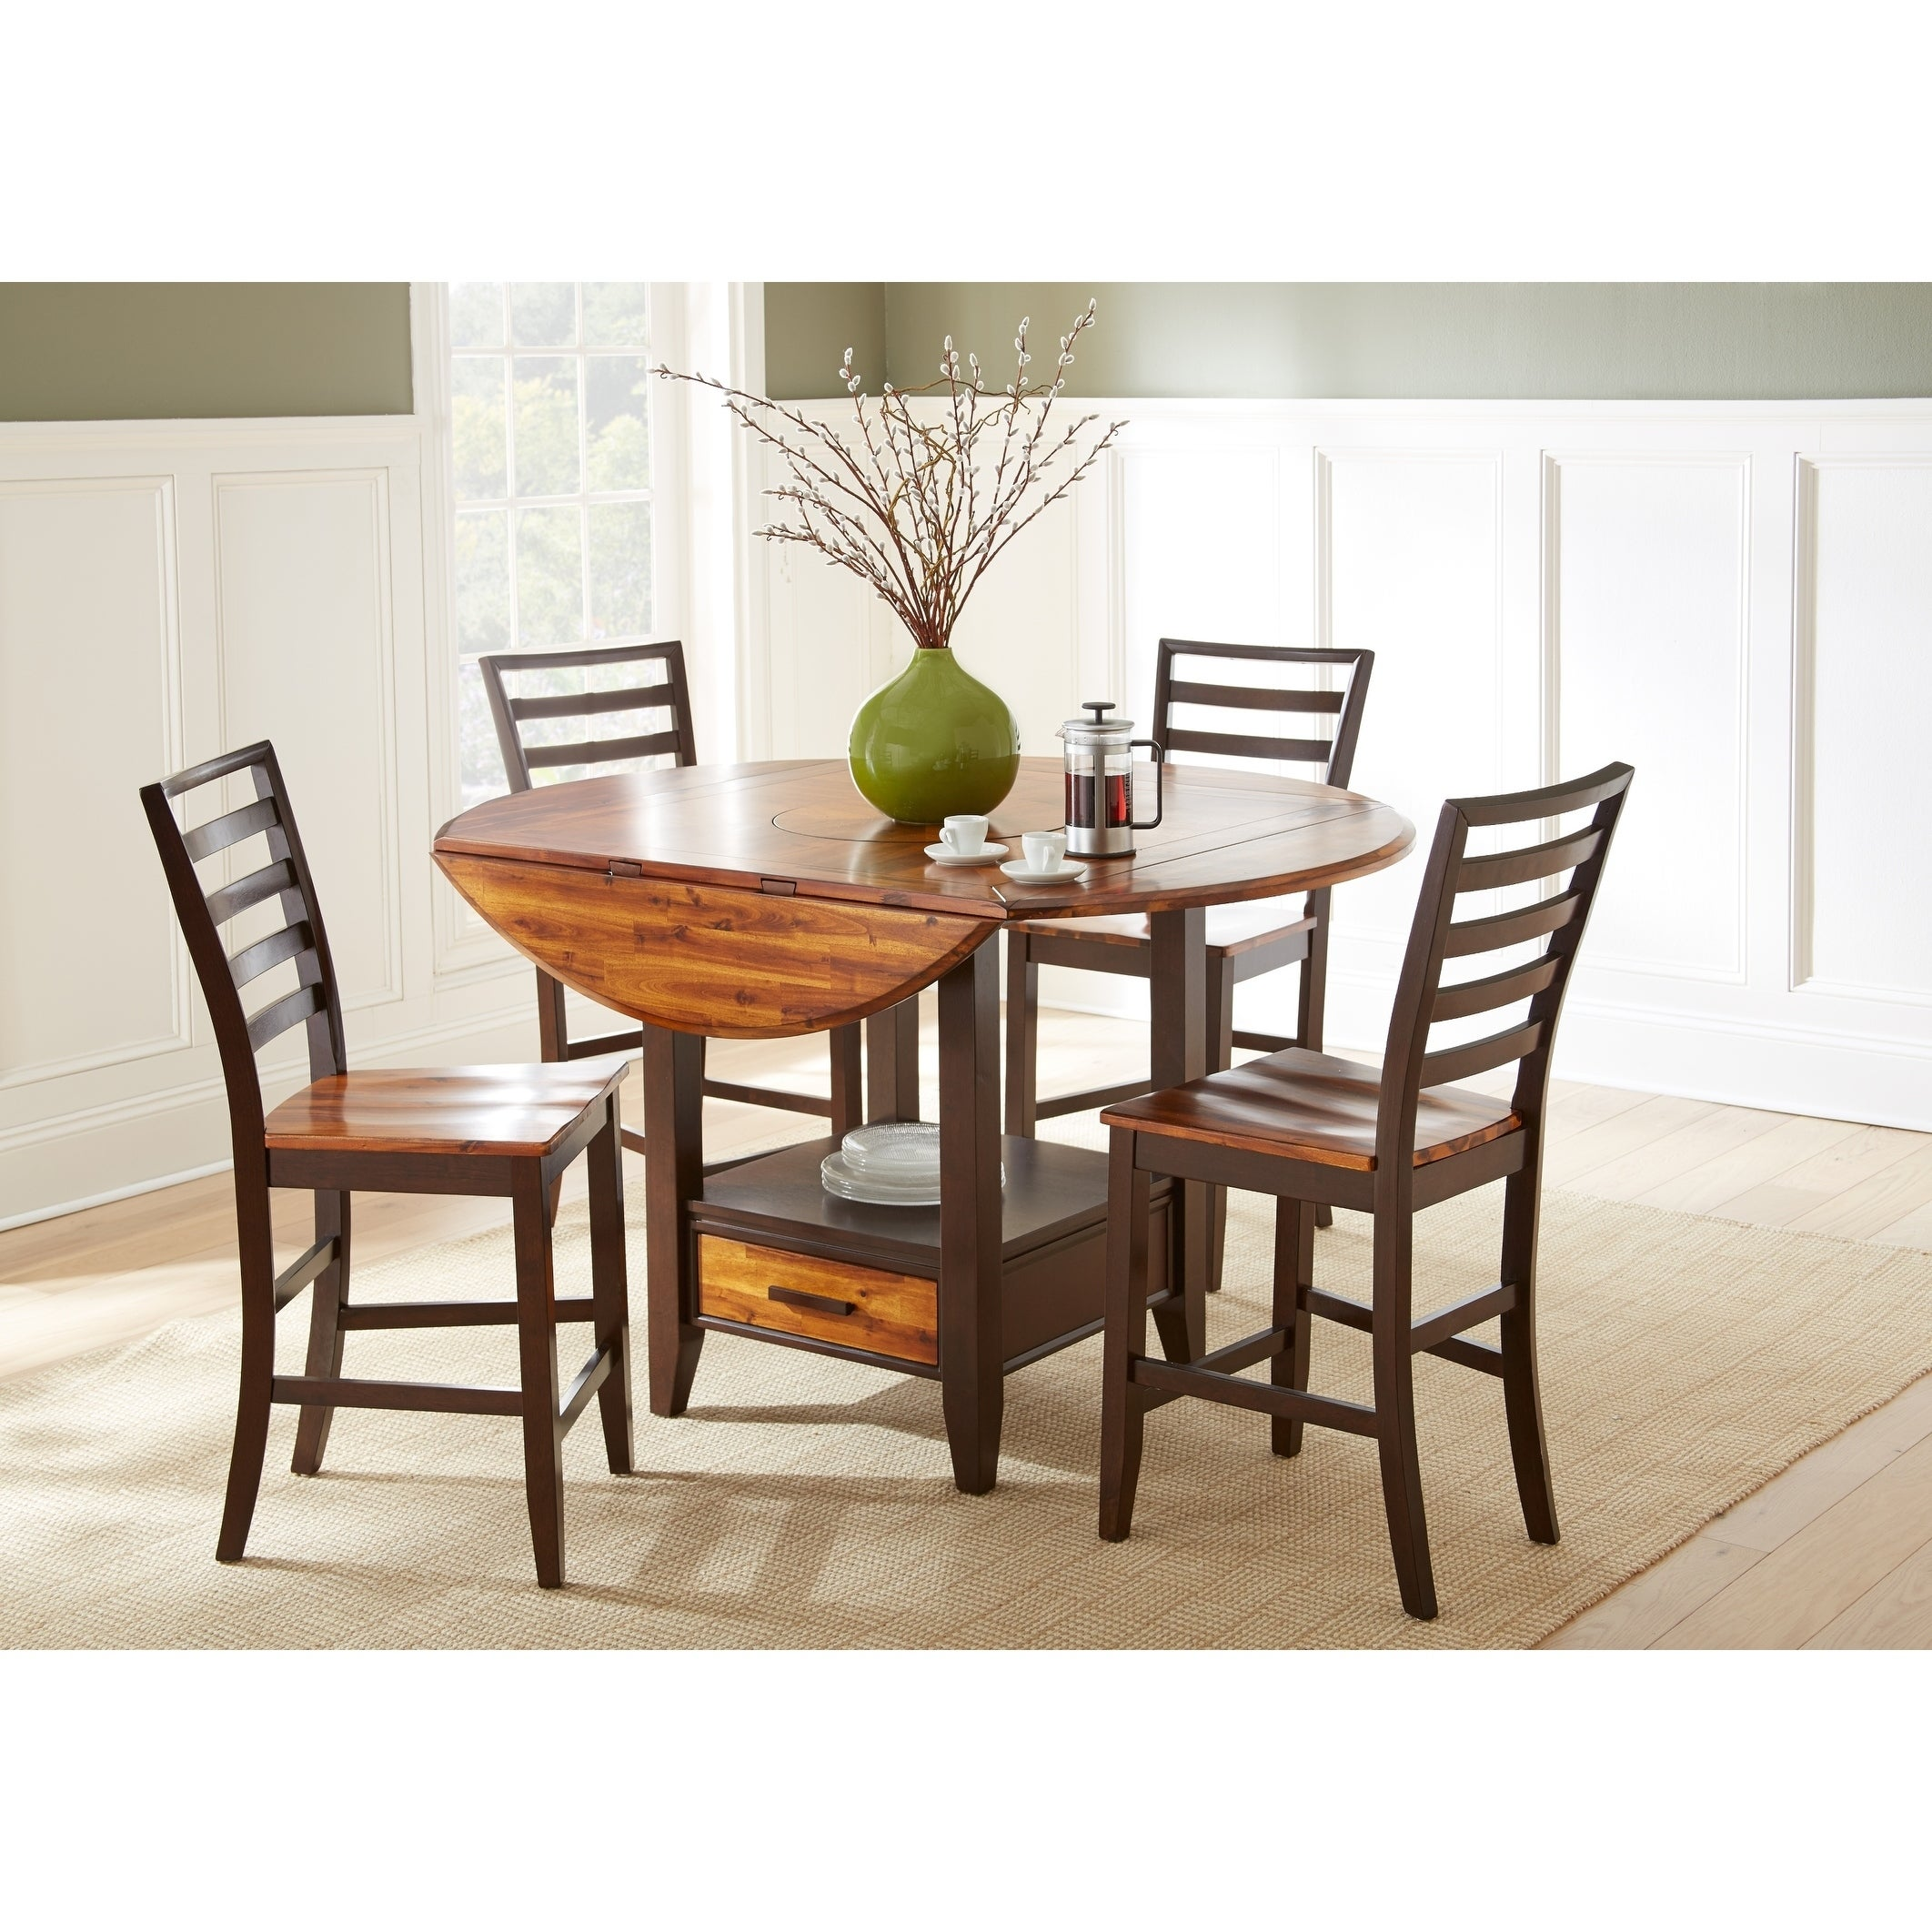 Copper Grove Warkworth Acacia 5 Piece Counter Height Lazy Susan And Storage Dining Set